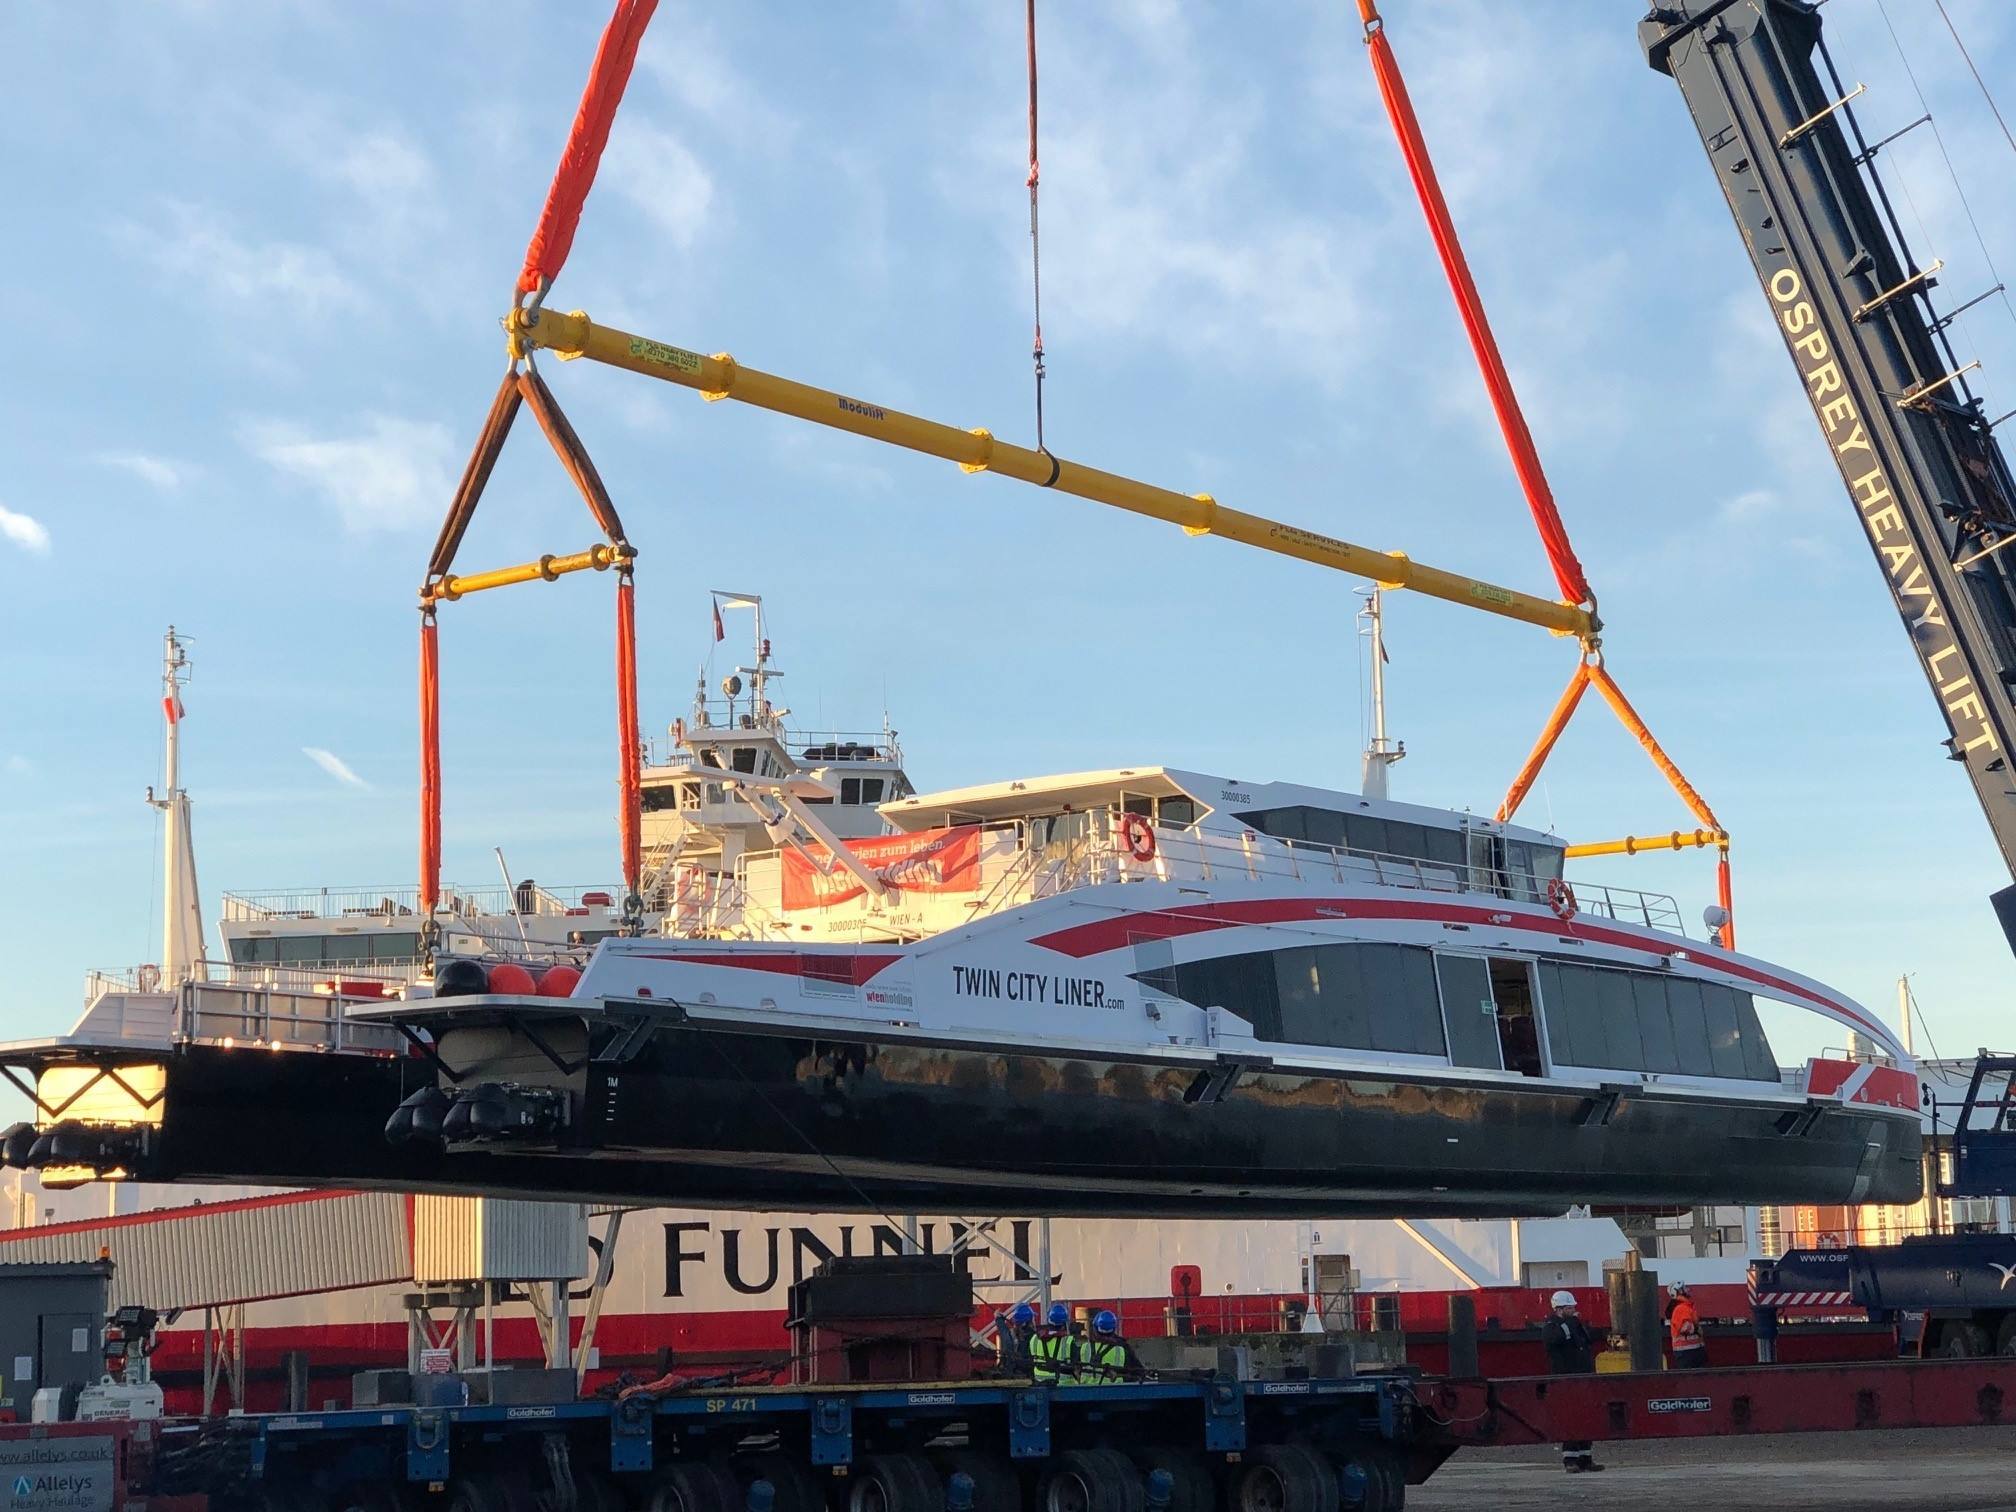 The 72 tonne Twin City Liner is lifted at Wight Shipyard